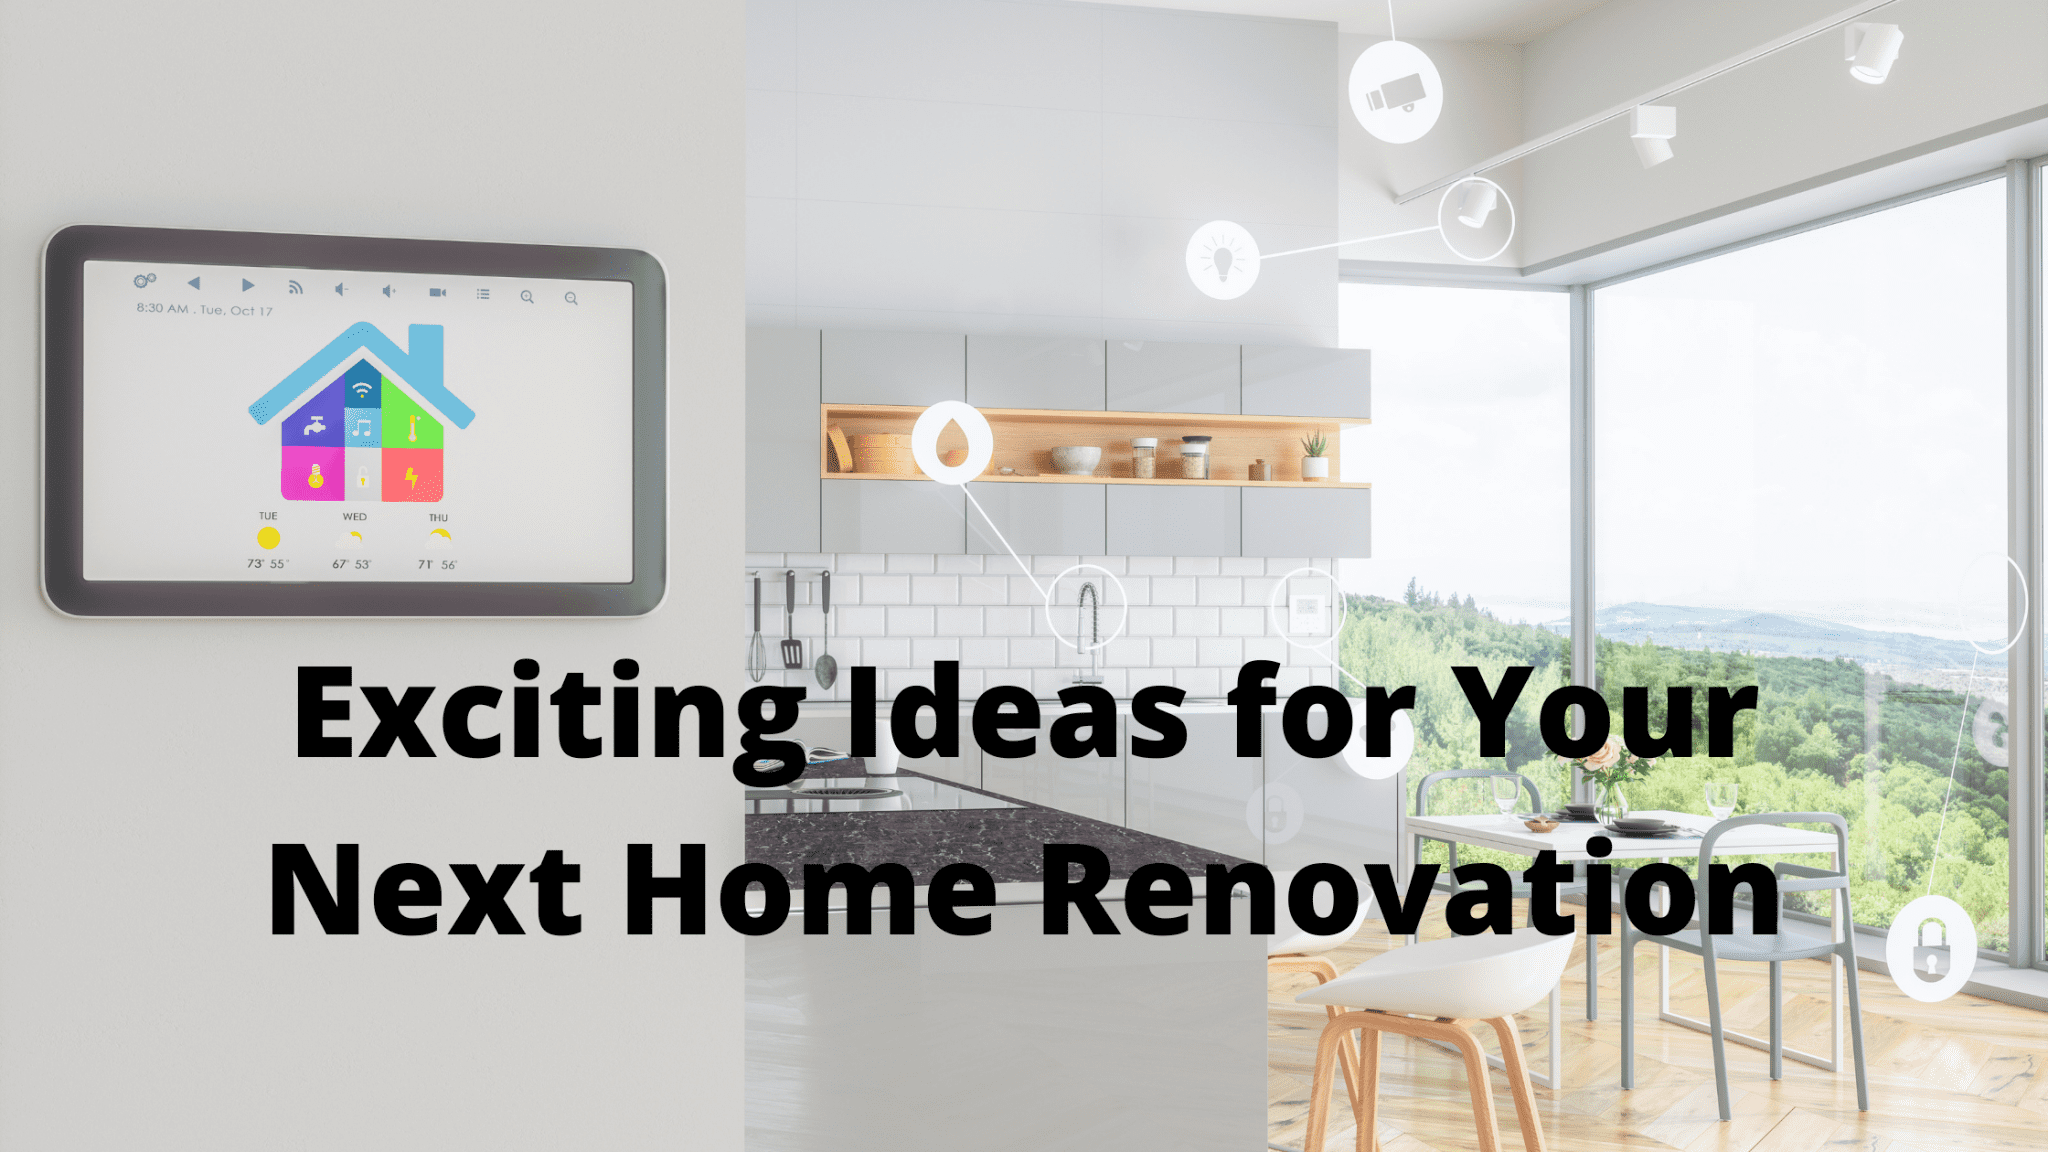 Exciting Ideas for Your Next Home Renovation